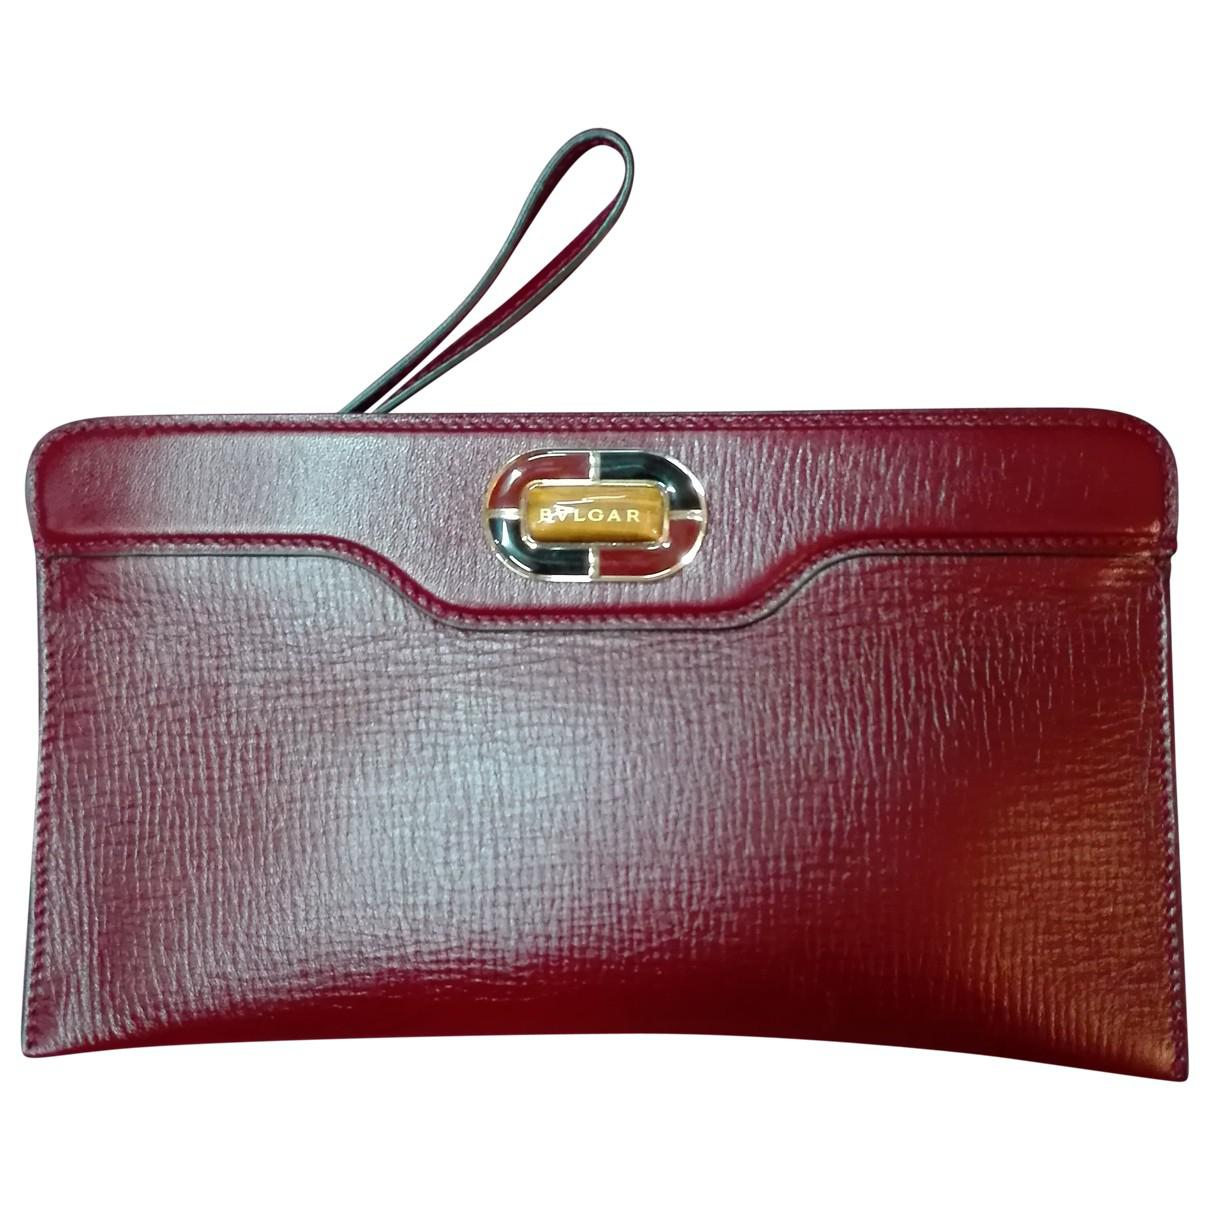 Bulgari Pre-owned - Leather clutch NqlChL1